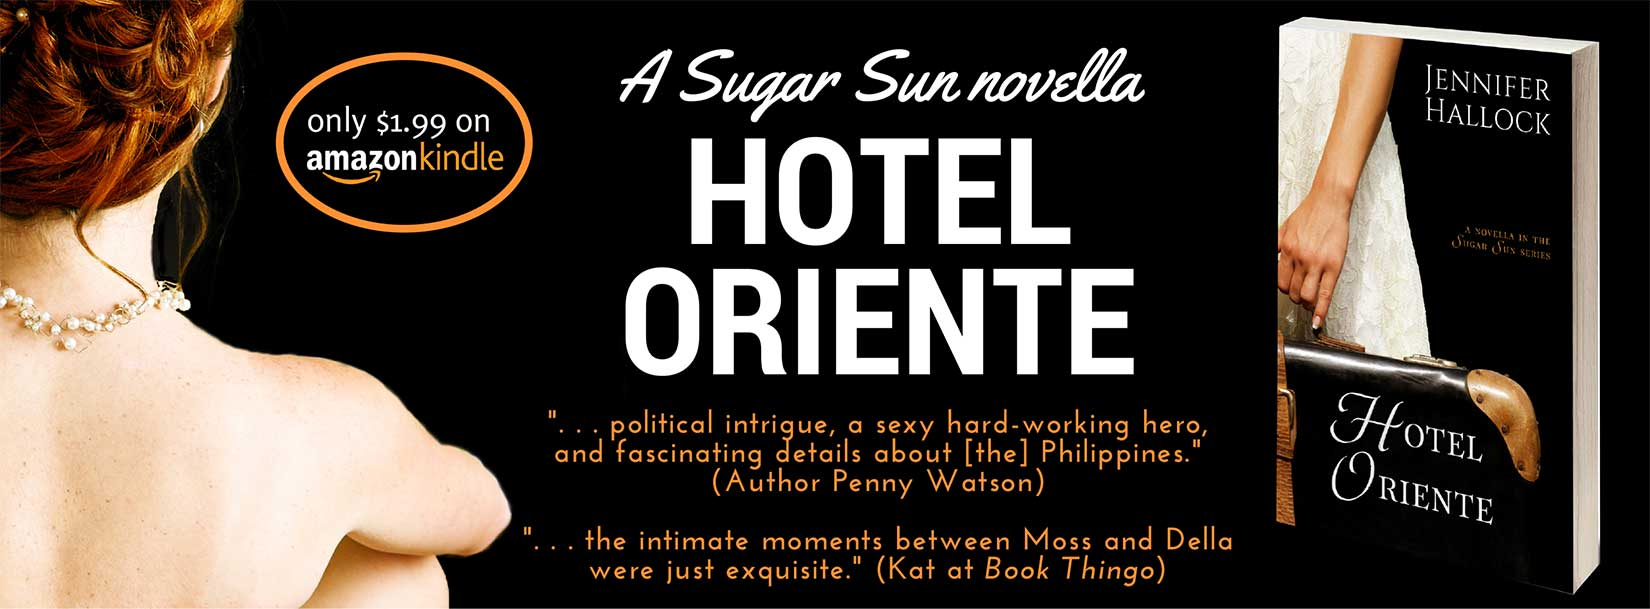 Hotel Oriente by Jennifer Hallock novella one in the steamy Sugar Sun historical romance series